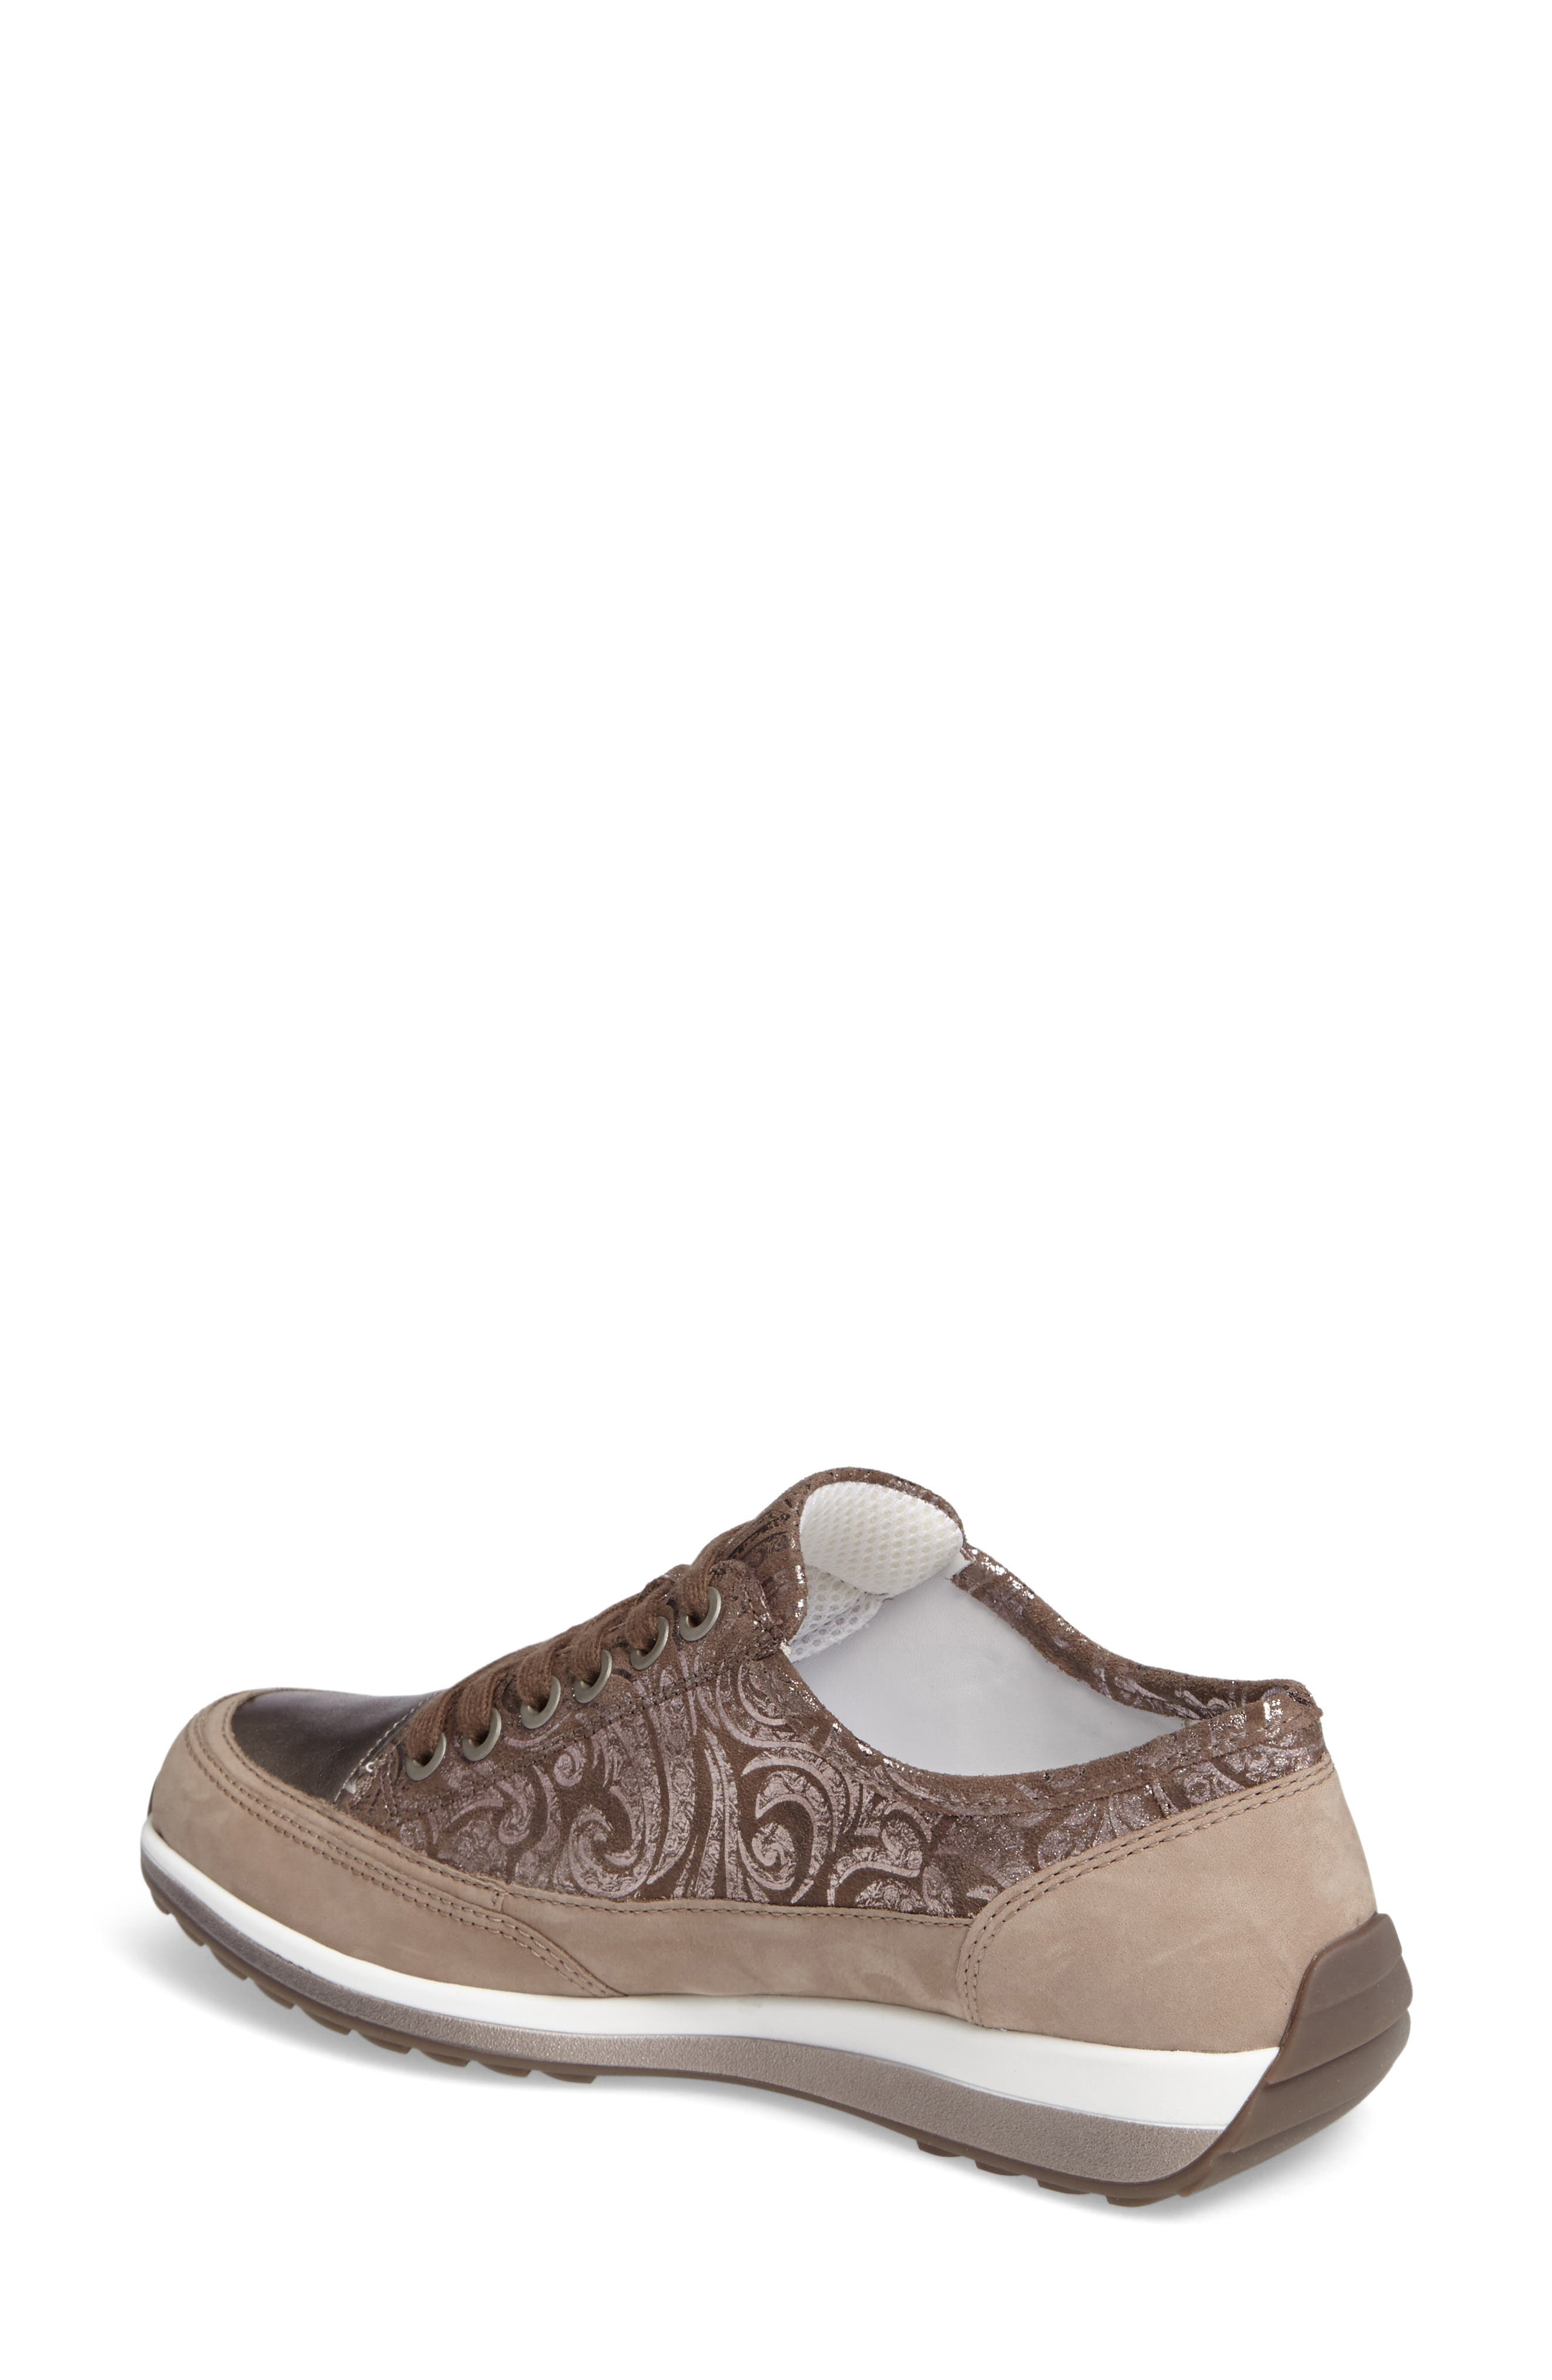 Hermione Sneaker,                             Alternate thumbnail 2, color,                             TAUPE COMBO LEATHER